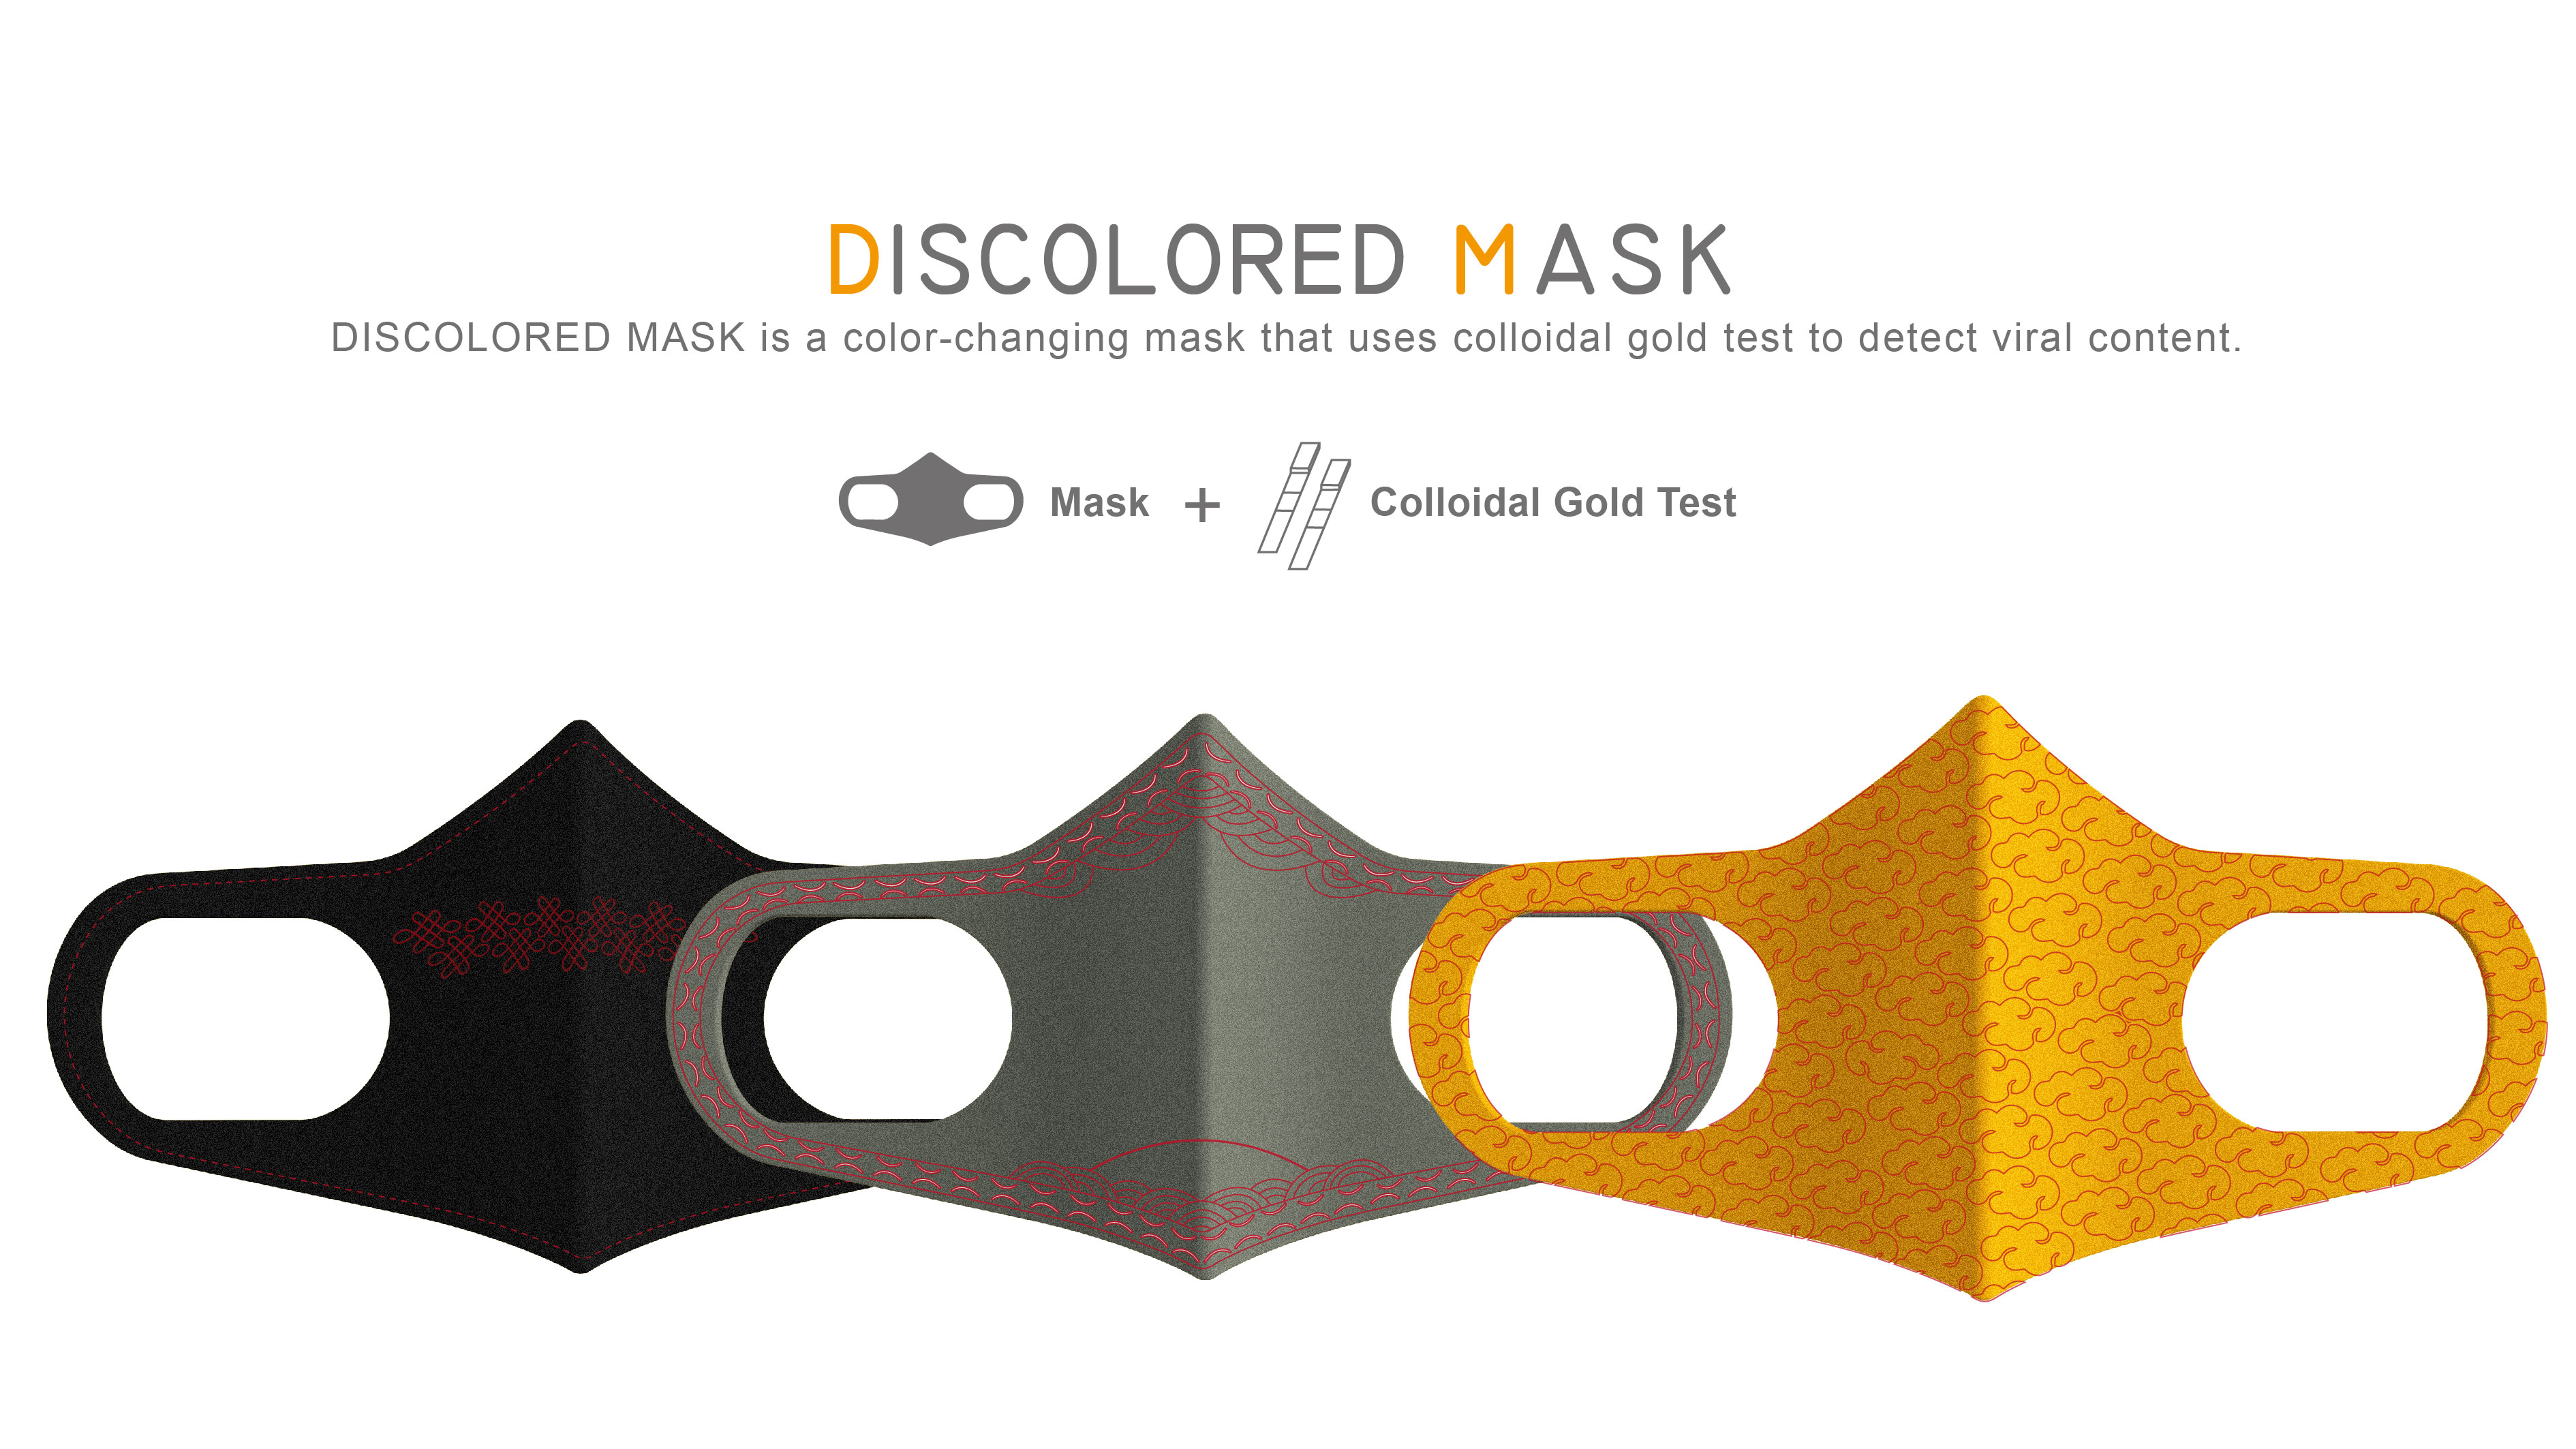 DISCOLORED MASK